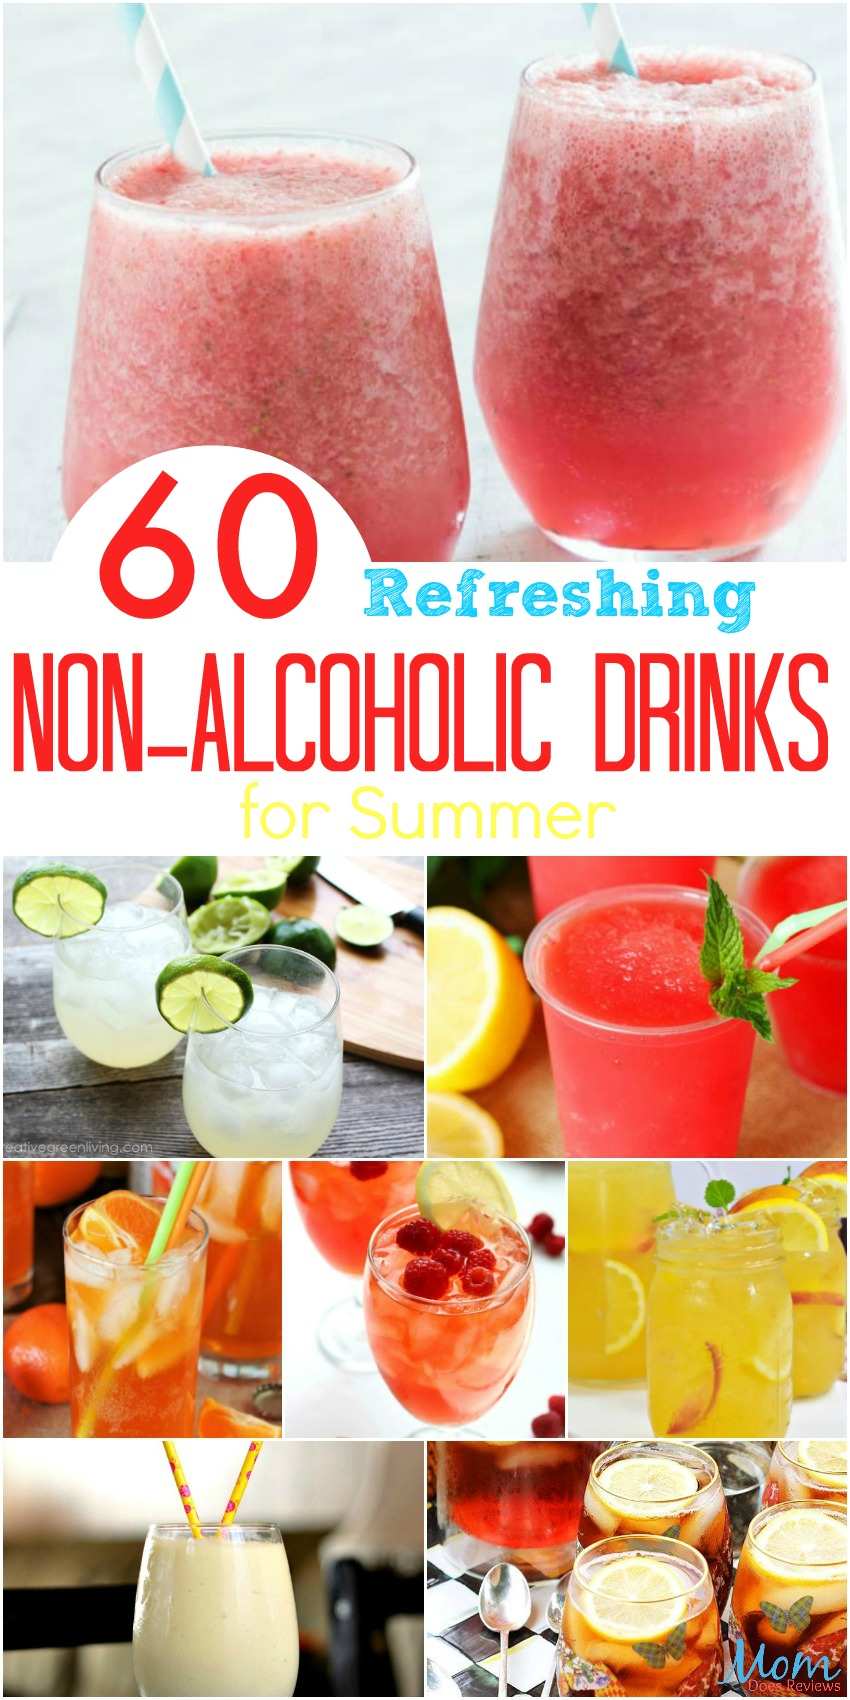 Make this with the same recipe, but add the associated alcohol. Yum! ... 60 Refreshing Drinks for Summer #recipes #drinks #beverages #refreshingdrinks #Summer #cooldown